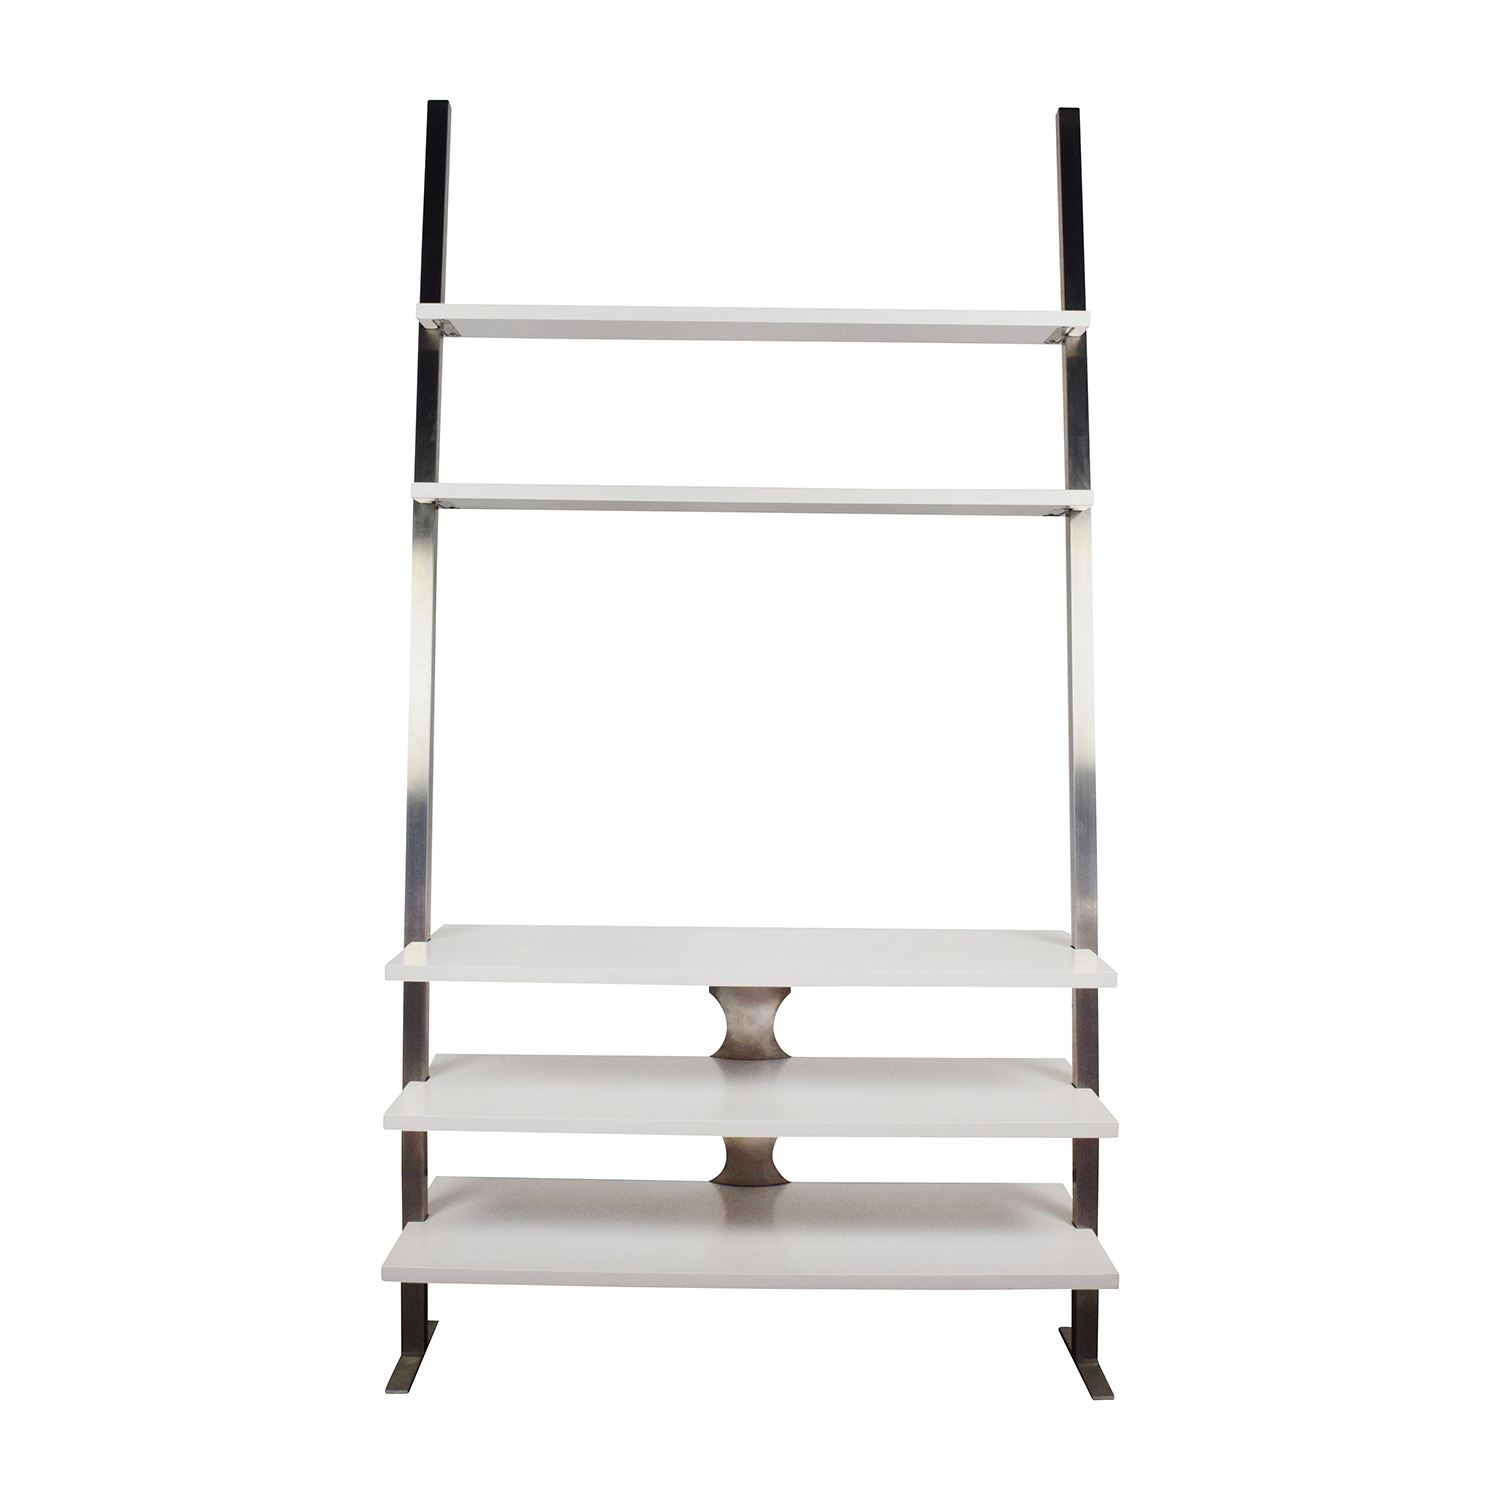 Room and Board Room & Board Gallery Media Leaning Shelf Whit and Chrome